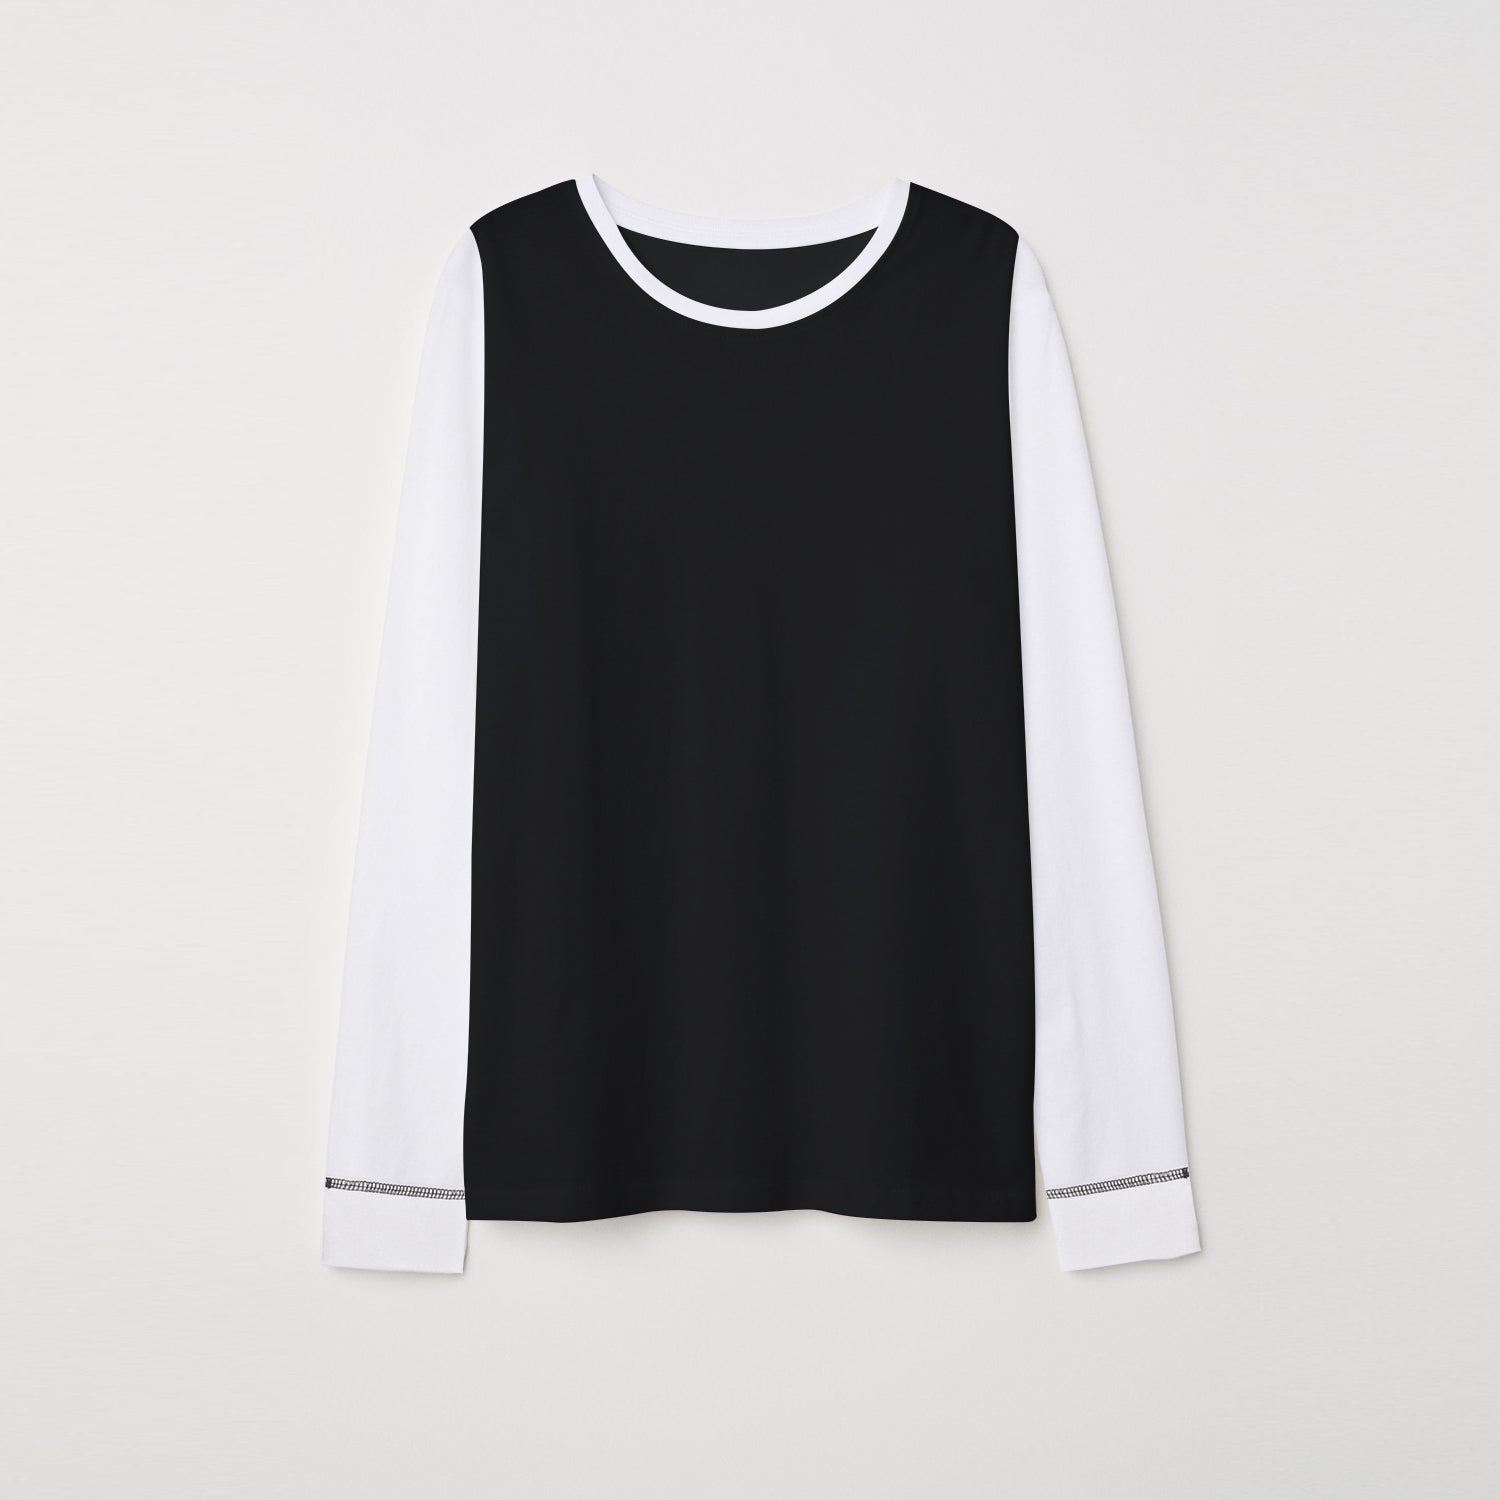 NEXT Single Jersey Long Sleeve Tee Shirt For Kids-White & Black-BE9343